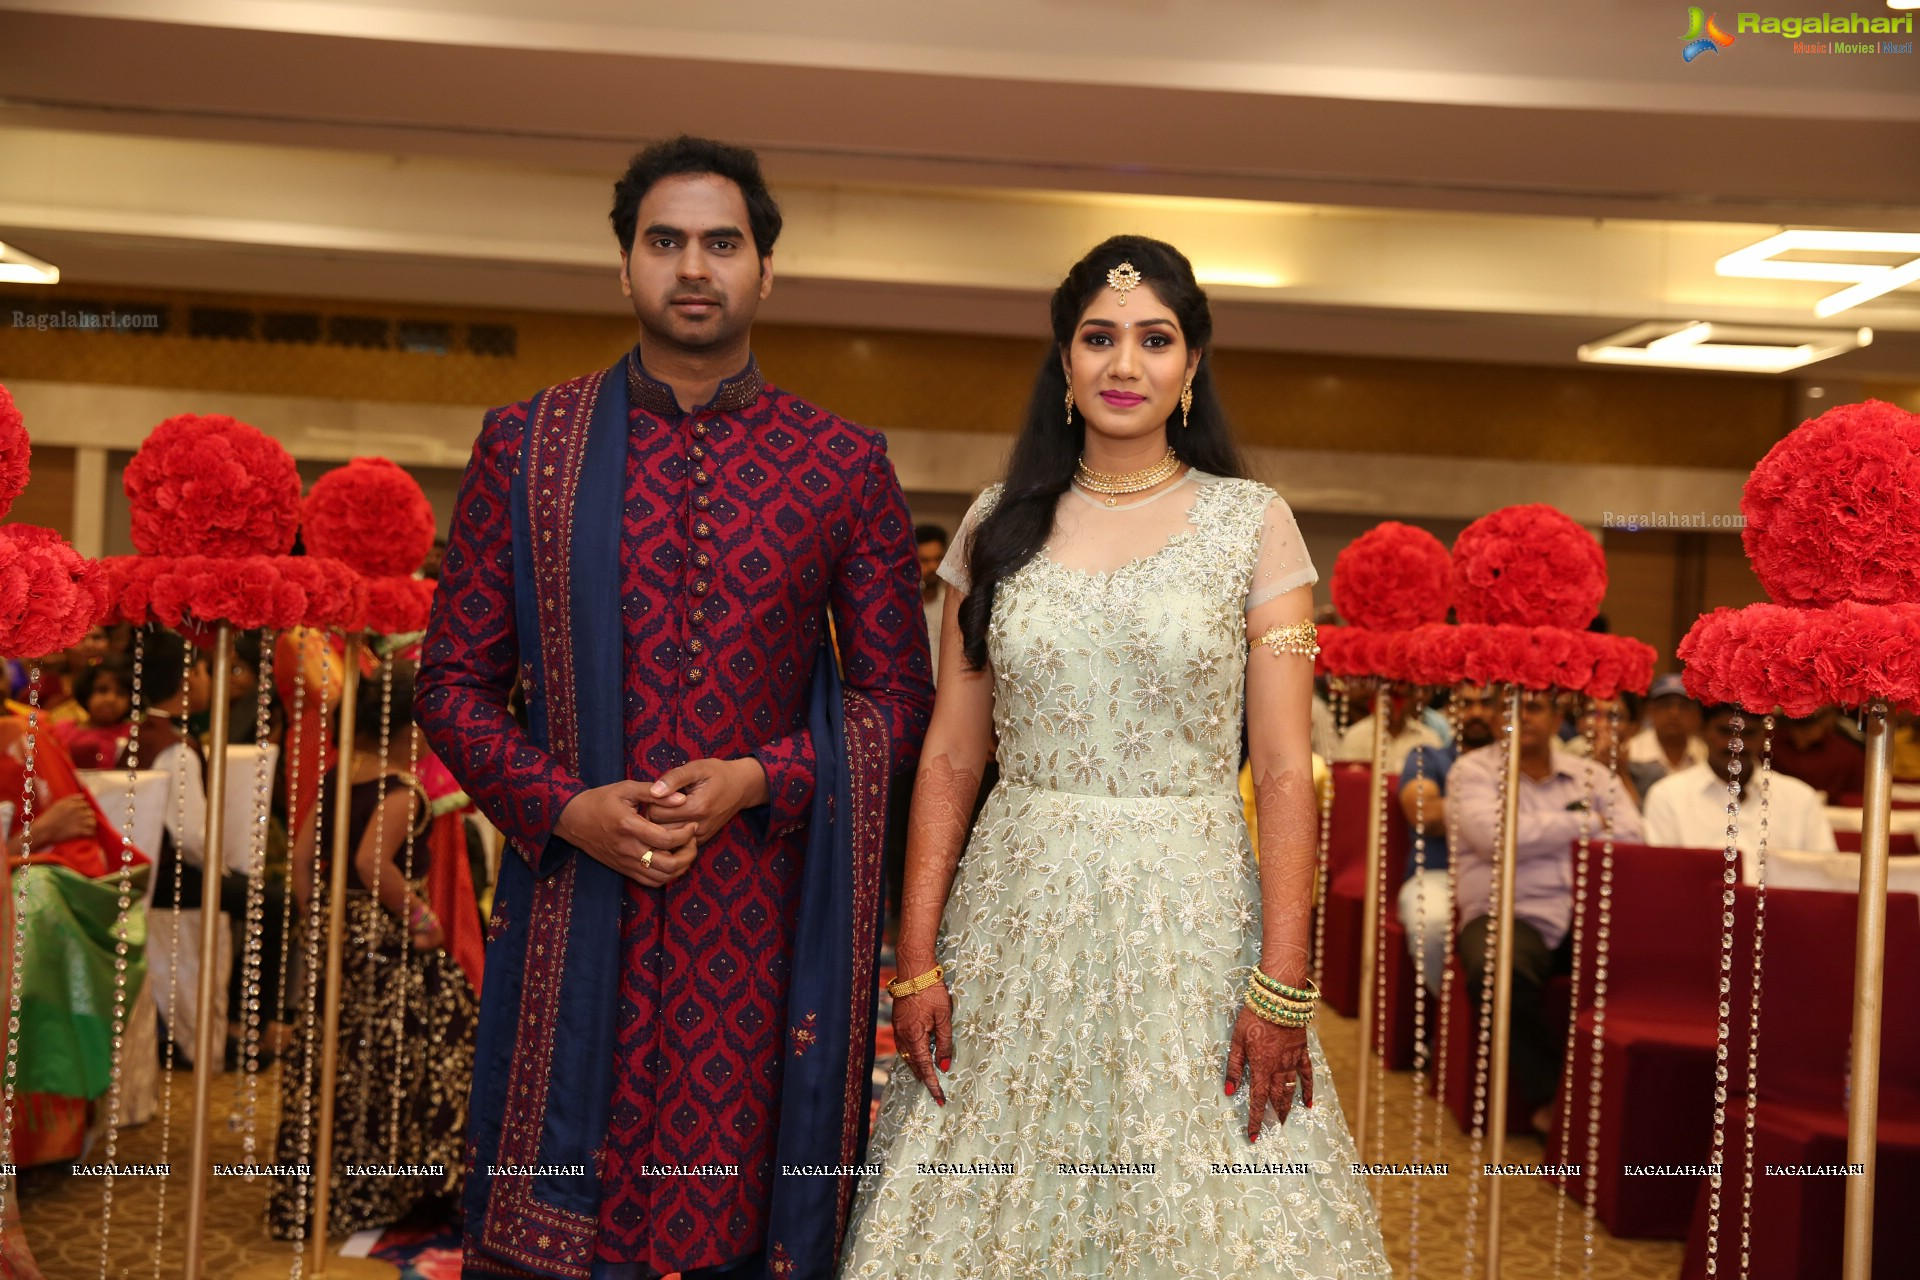 Sravan Varma and Hima Sruthi's Wedding Reception